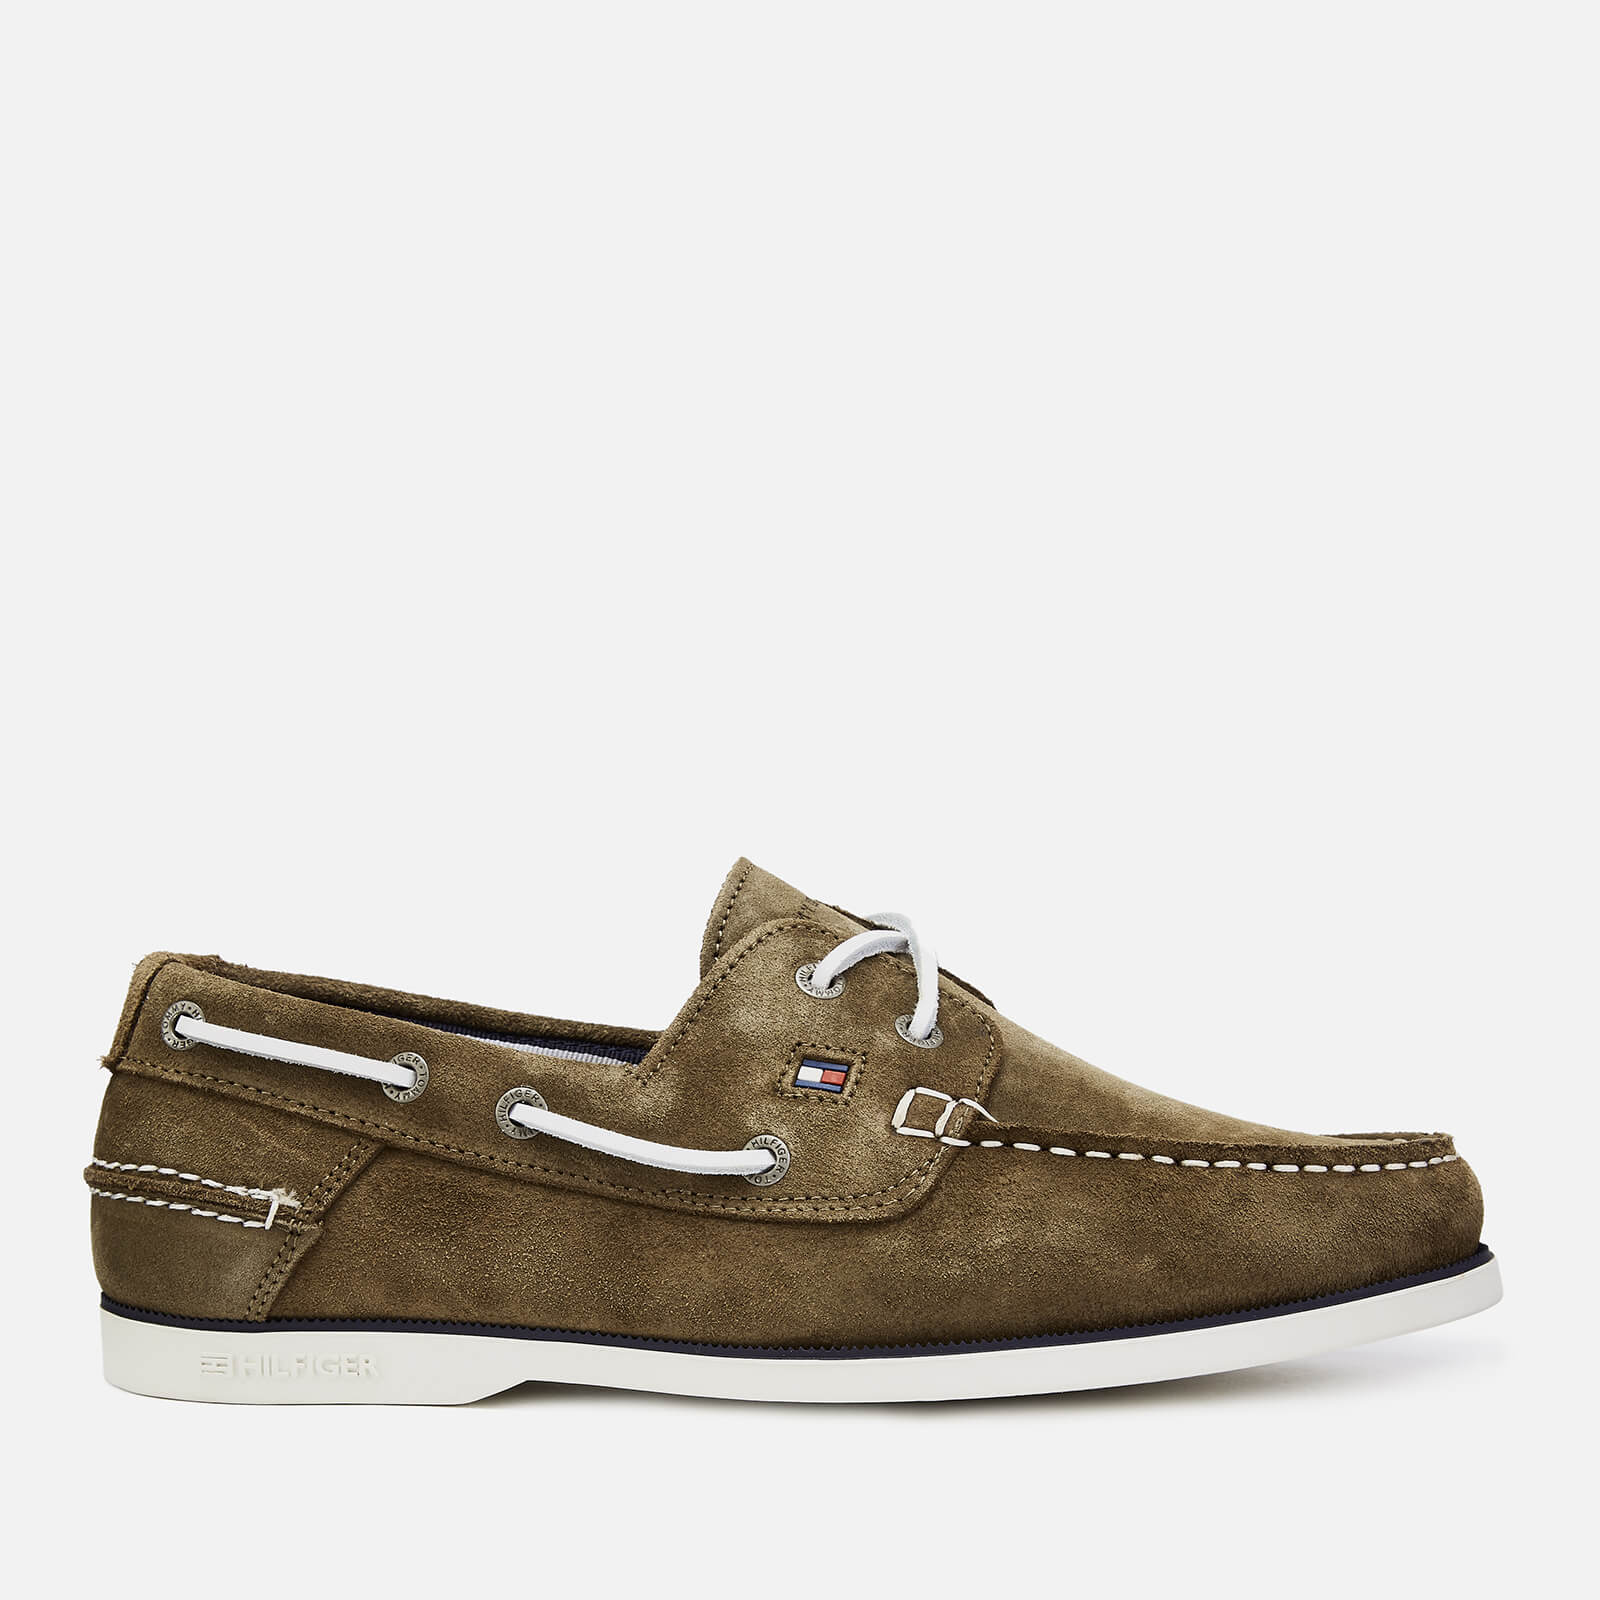 e5532adfa60c Tommy Hilfiger Men s Classic Suede Boat Shoes - Olive Night Clothing ...